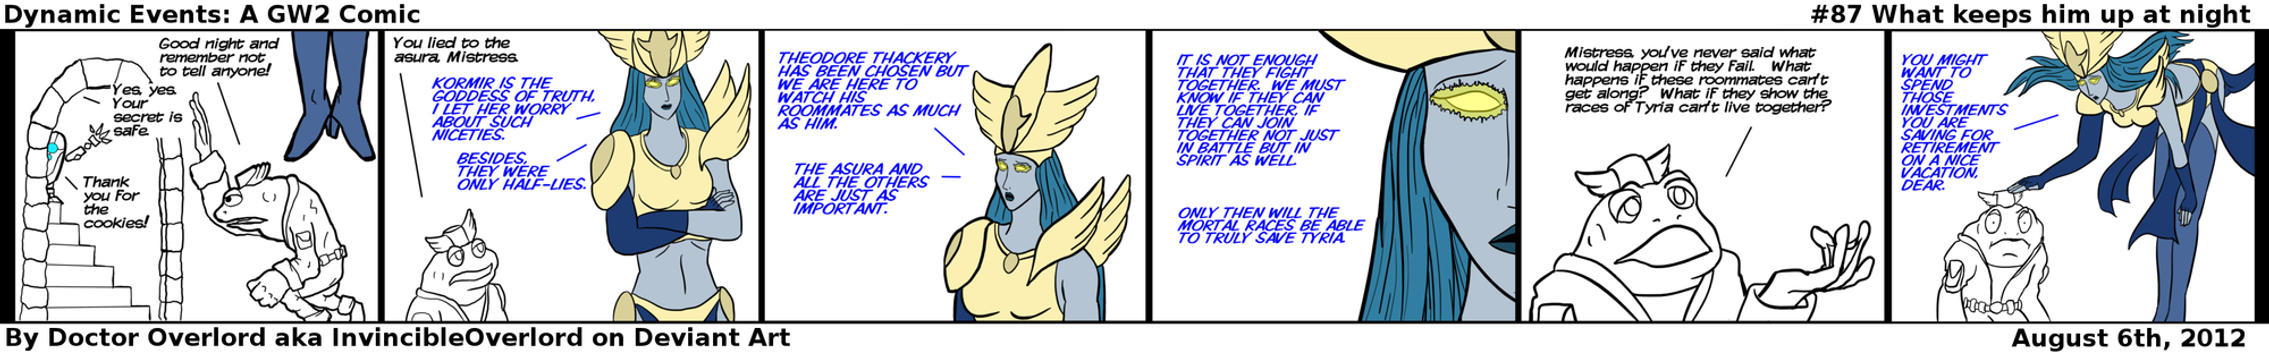 Dynamic Events: A Guild Wars 2 comic #87 by DoctorOverlord